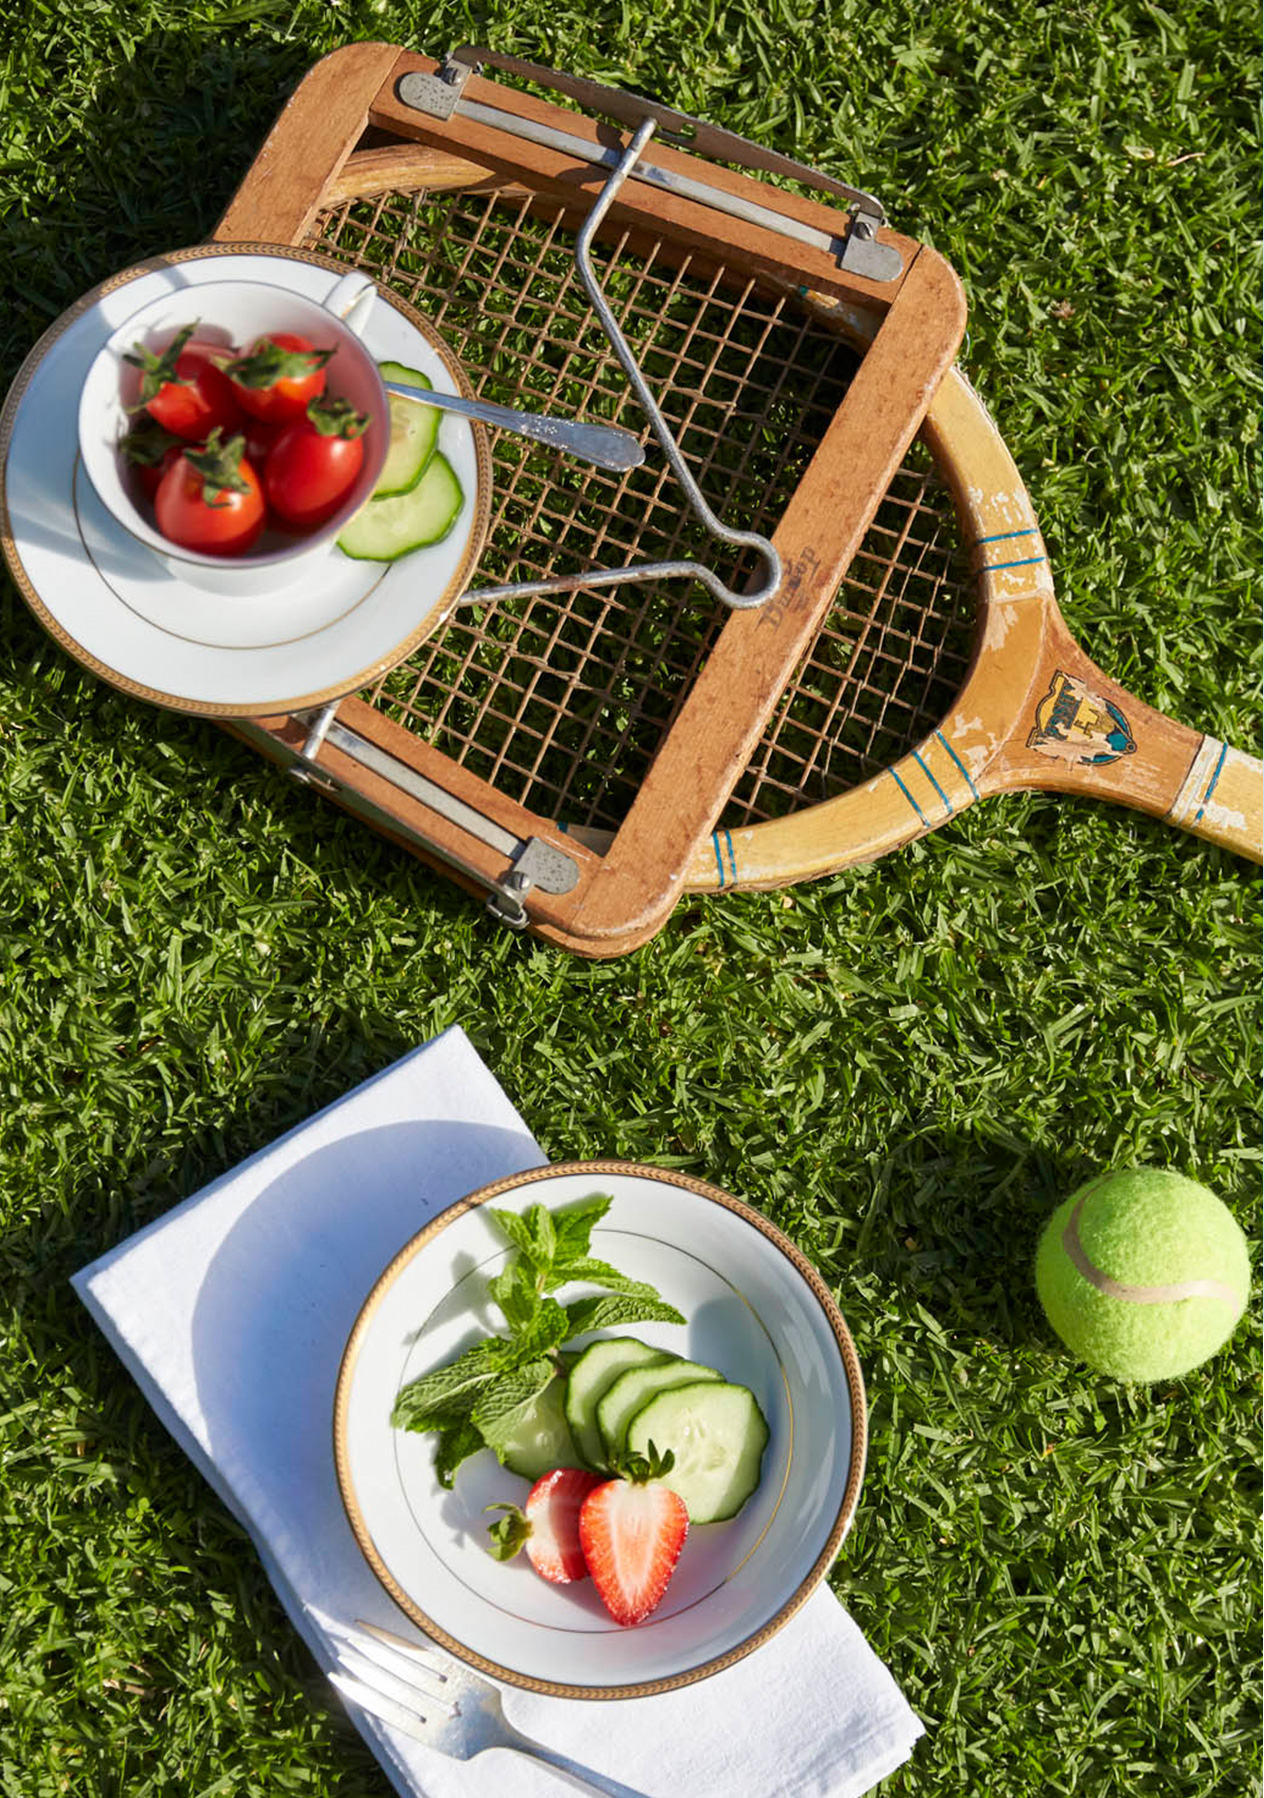 Scattered pastel tennis balls and strawberries lay on the grass